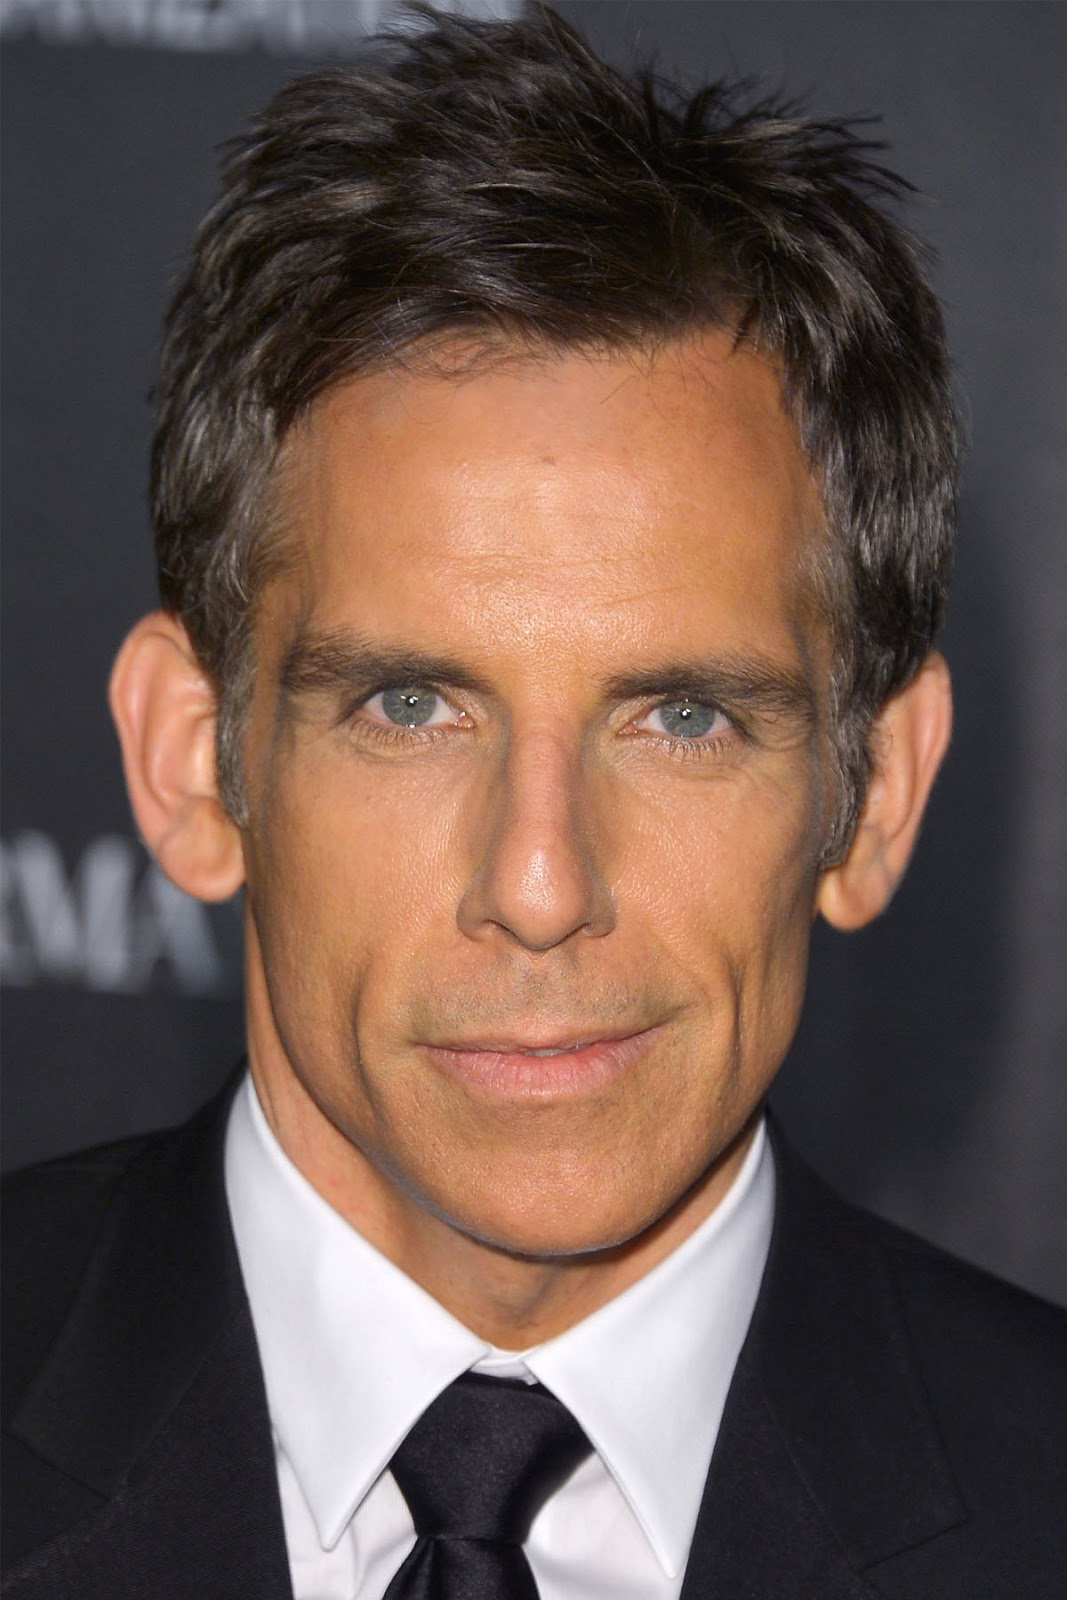 ben stiller hd wallpapers high definition free background. Black Bedroom Furniture Sets. Home Design Ideas